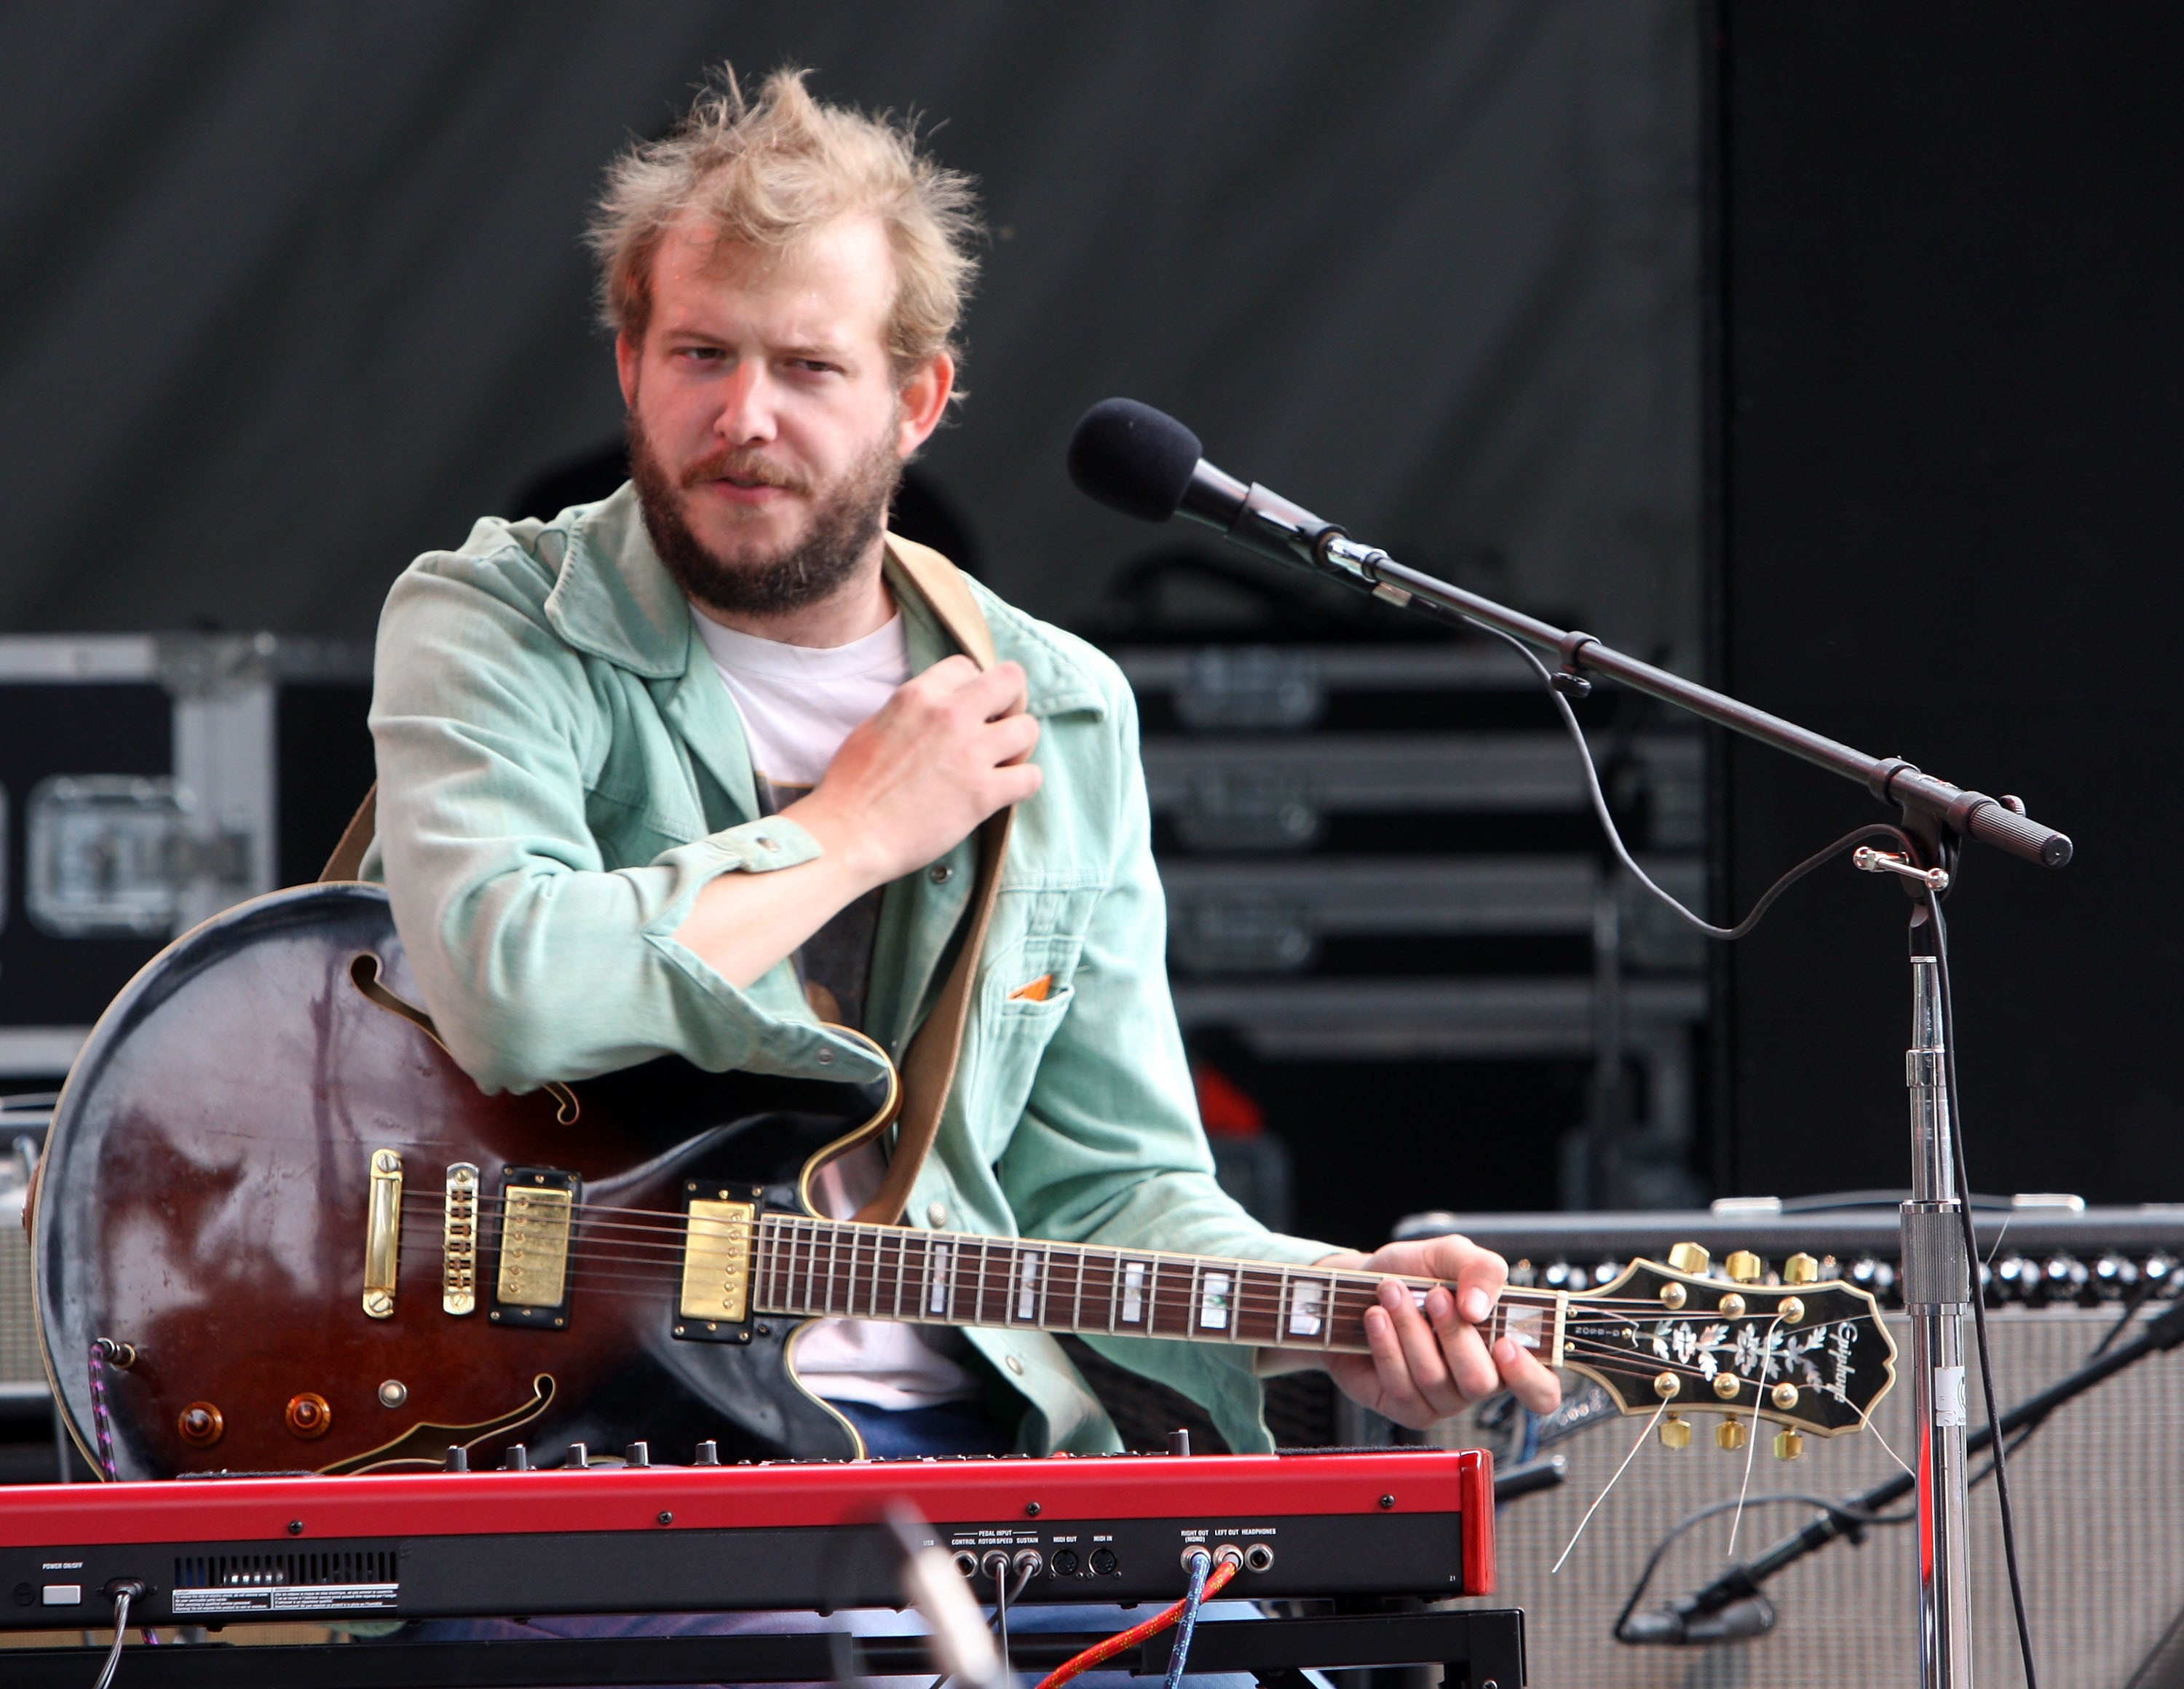 2008 Outside Lands Music And Arts Festival - Day 3 - Bon Iver